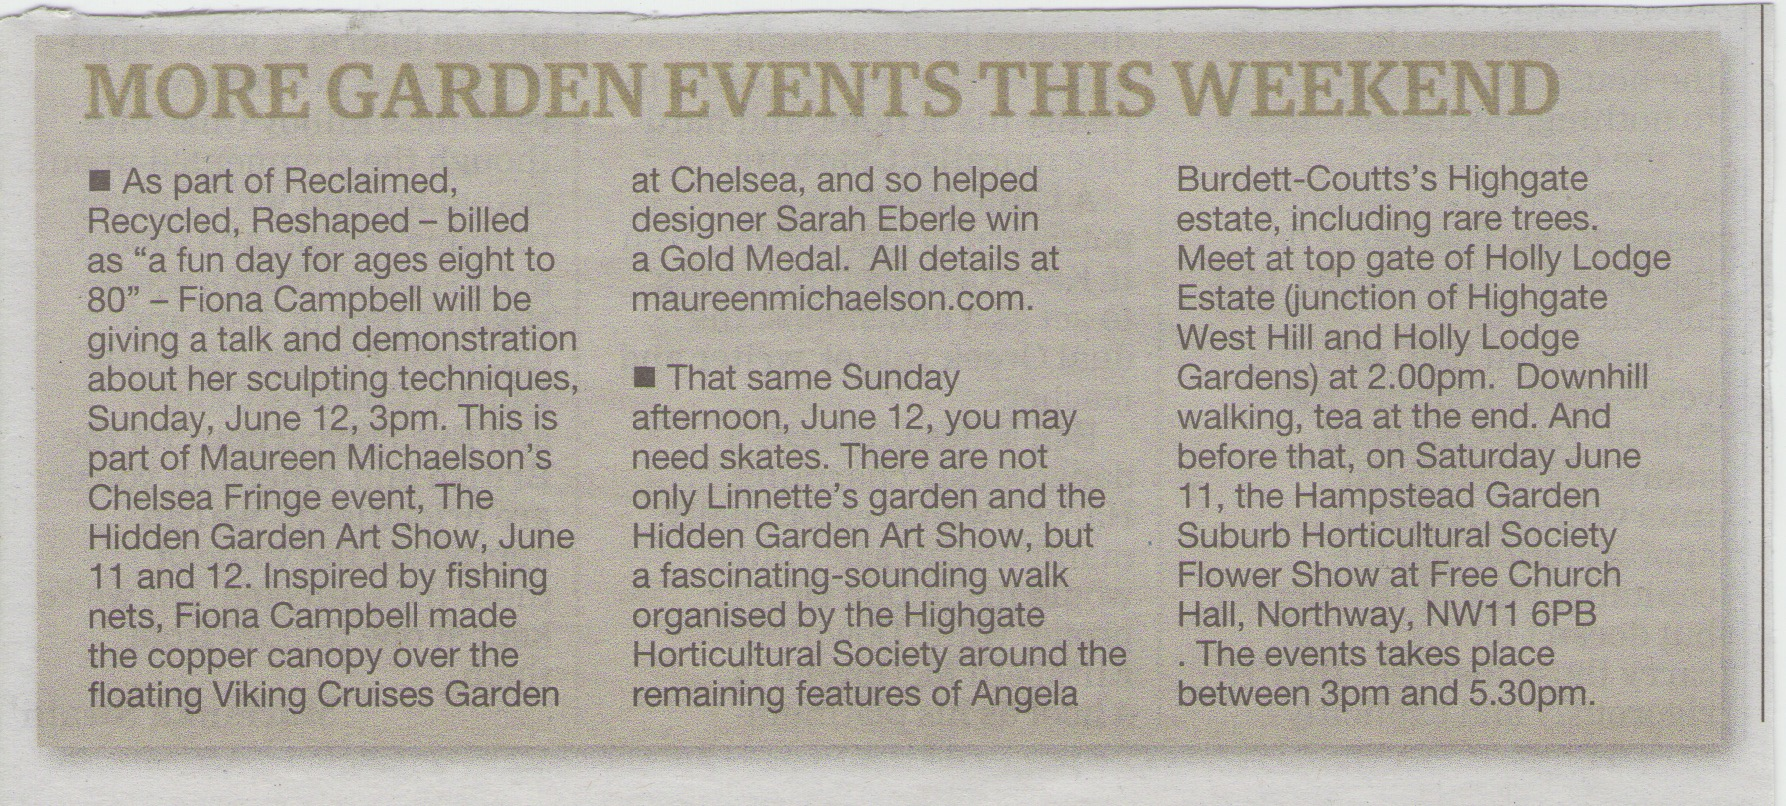 Ham & High - Garden Events